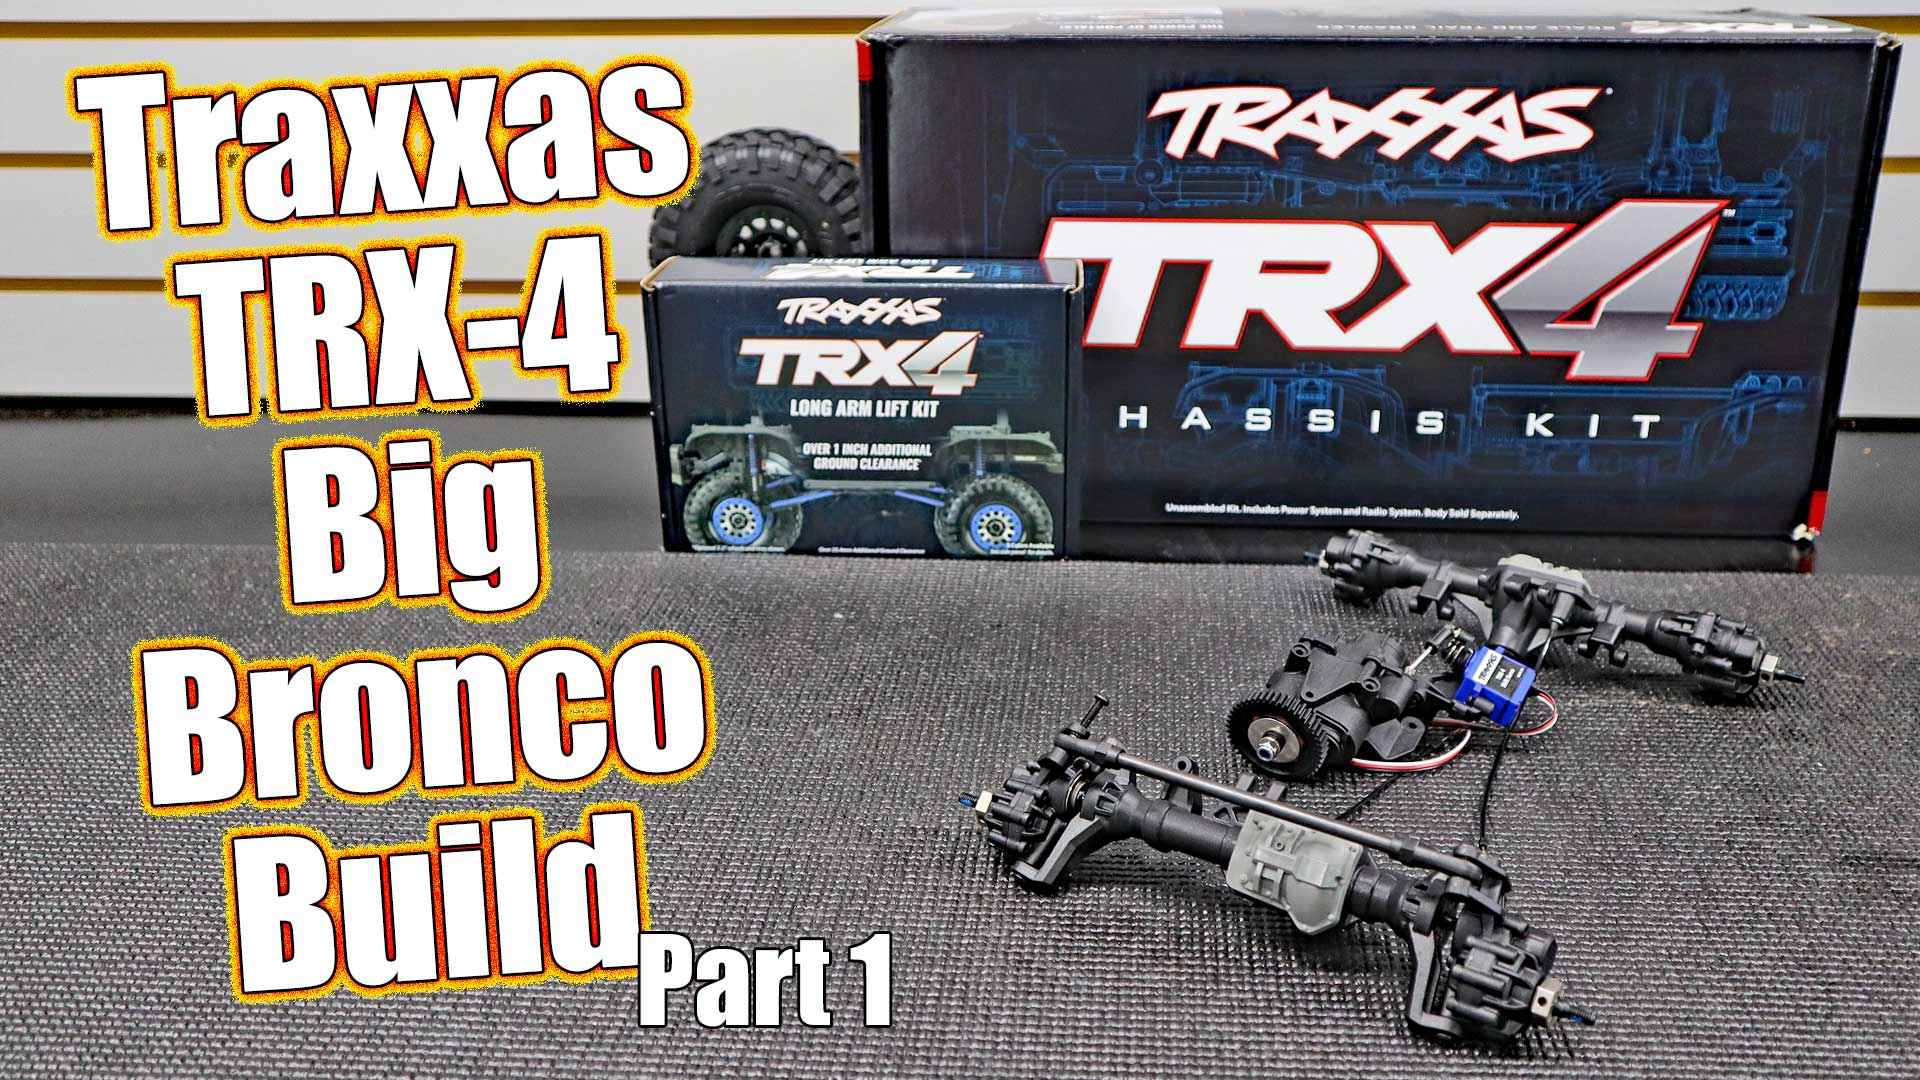 Traxxas TRX-4 Lifted Ford Bronco Project Truck - Series Pt 1 Driveline